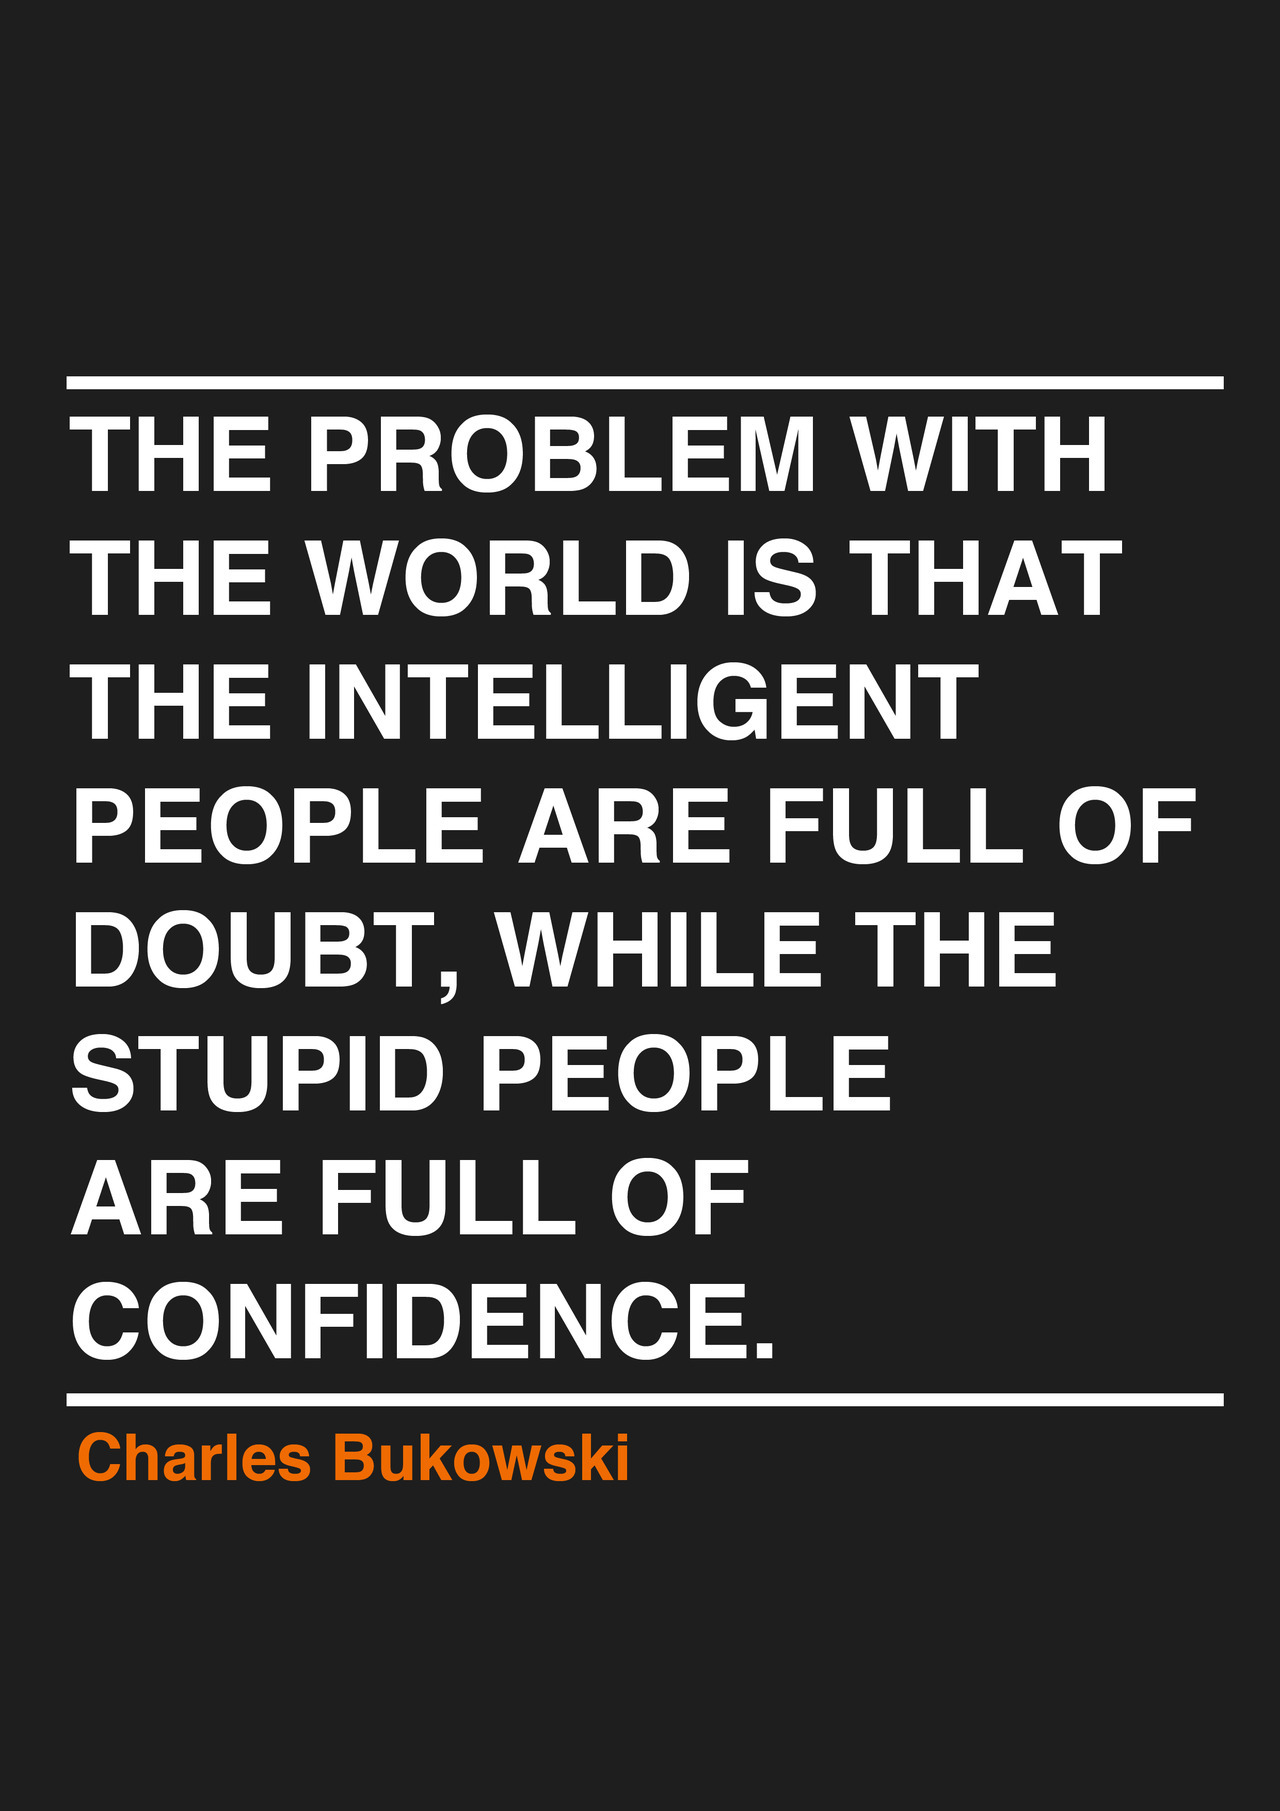 It doesn't make people with doubts intelligent, though.